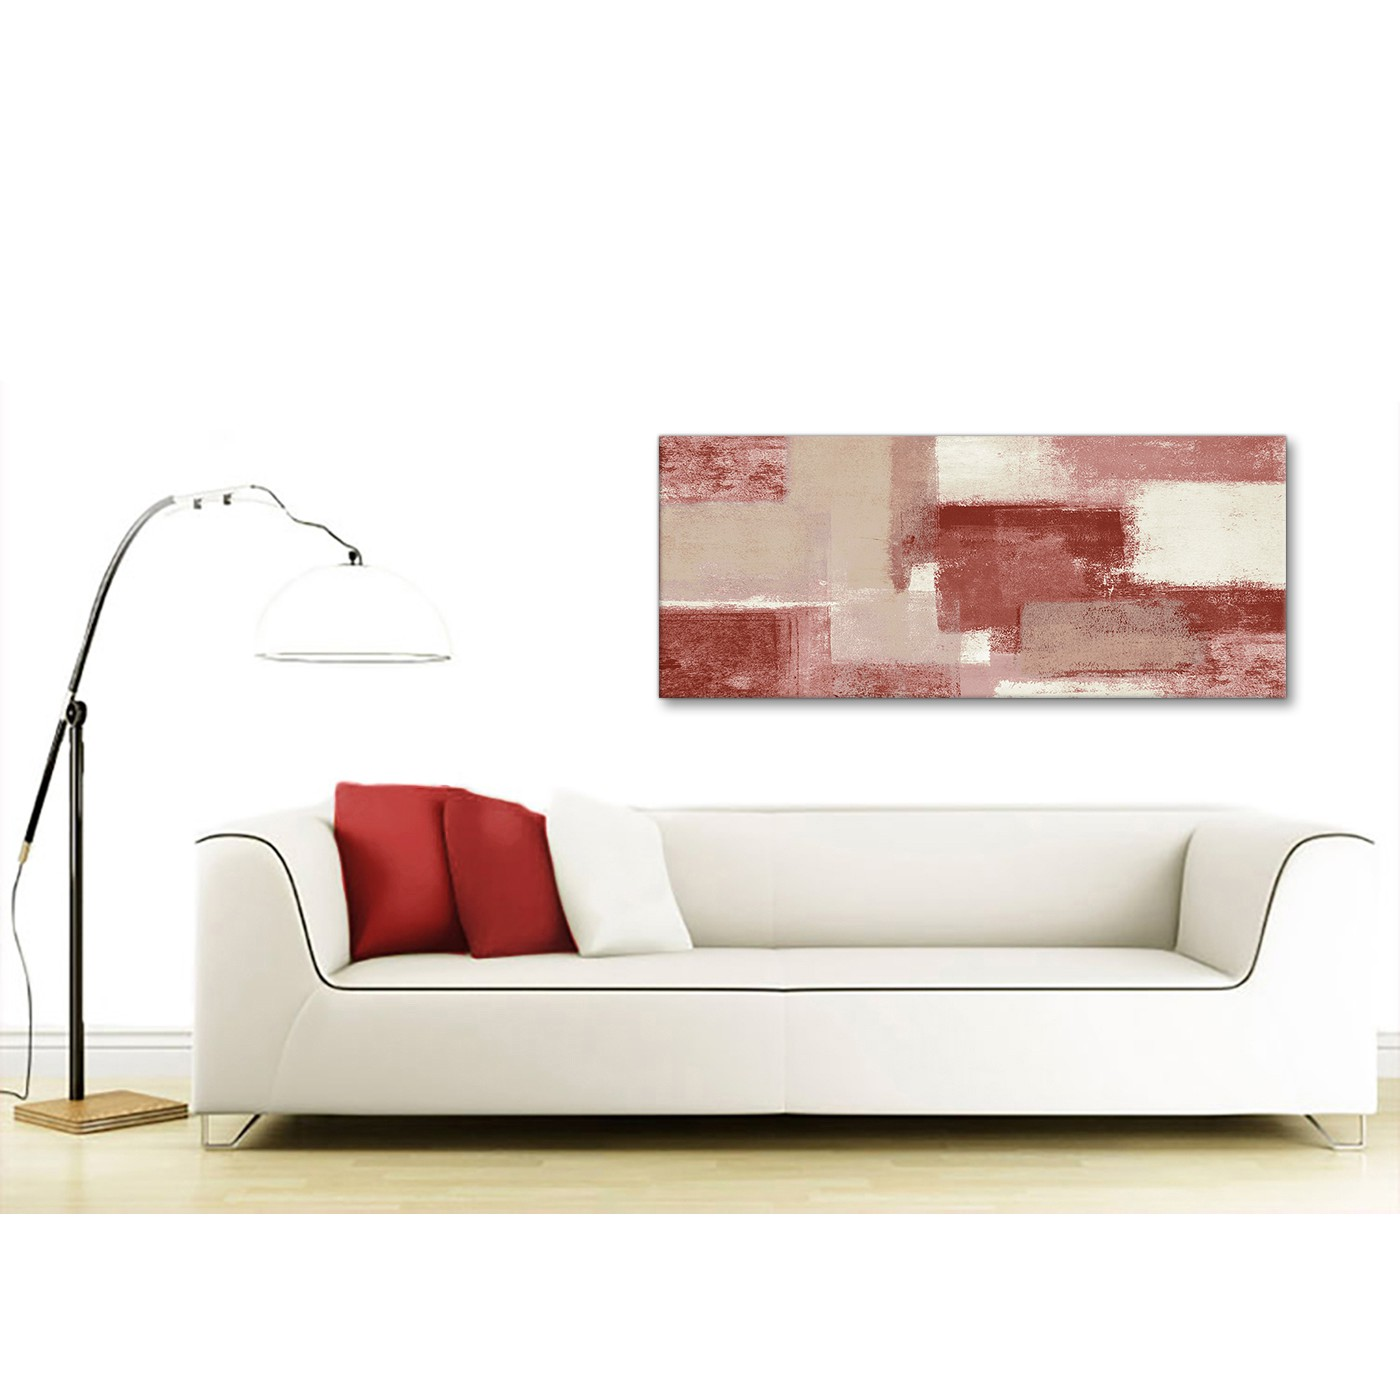 Red and Cream Living Room Canvas Wall Art Accessories - Abstract ...